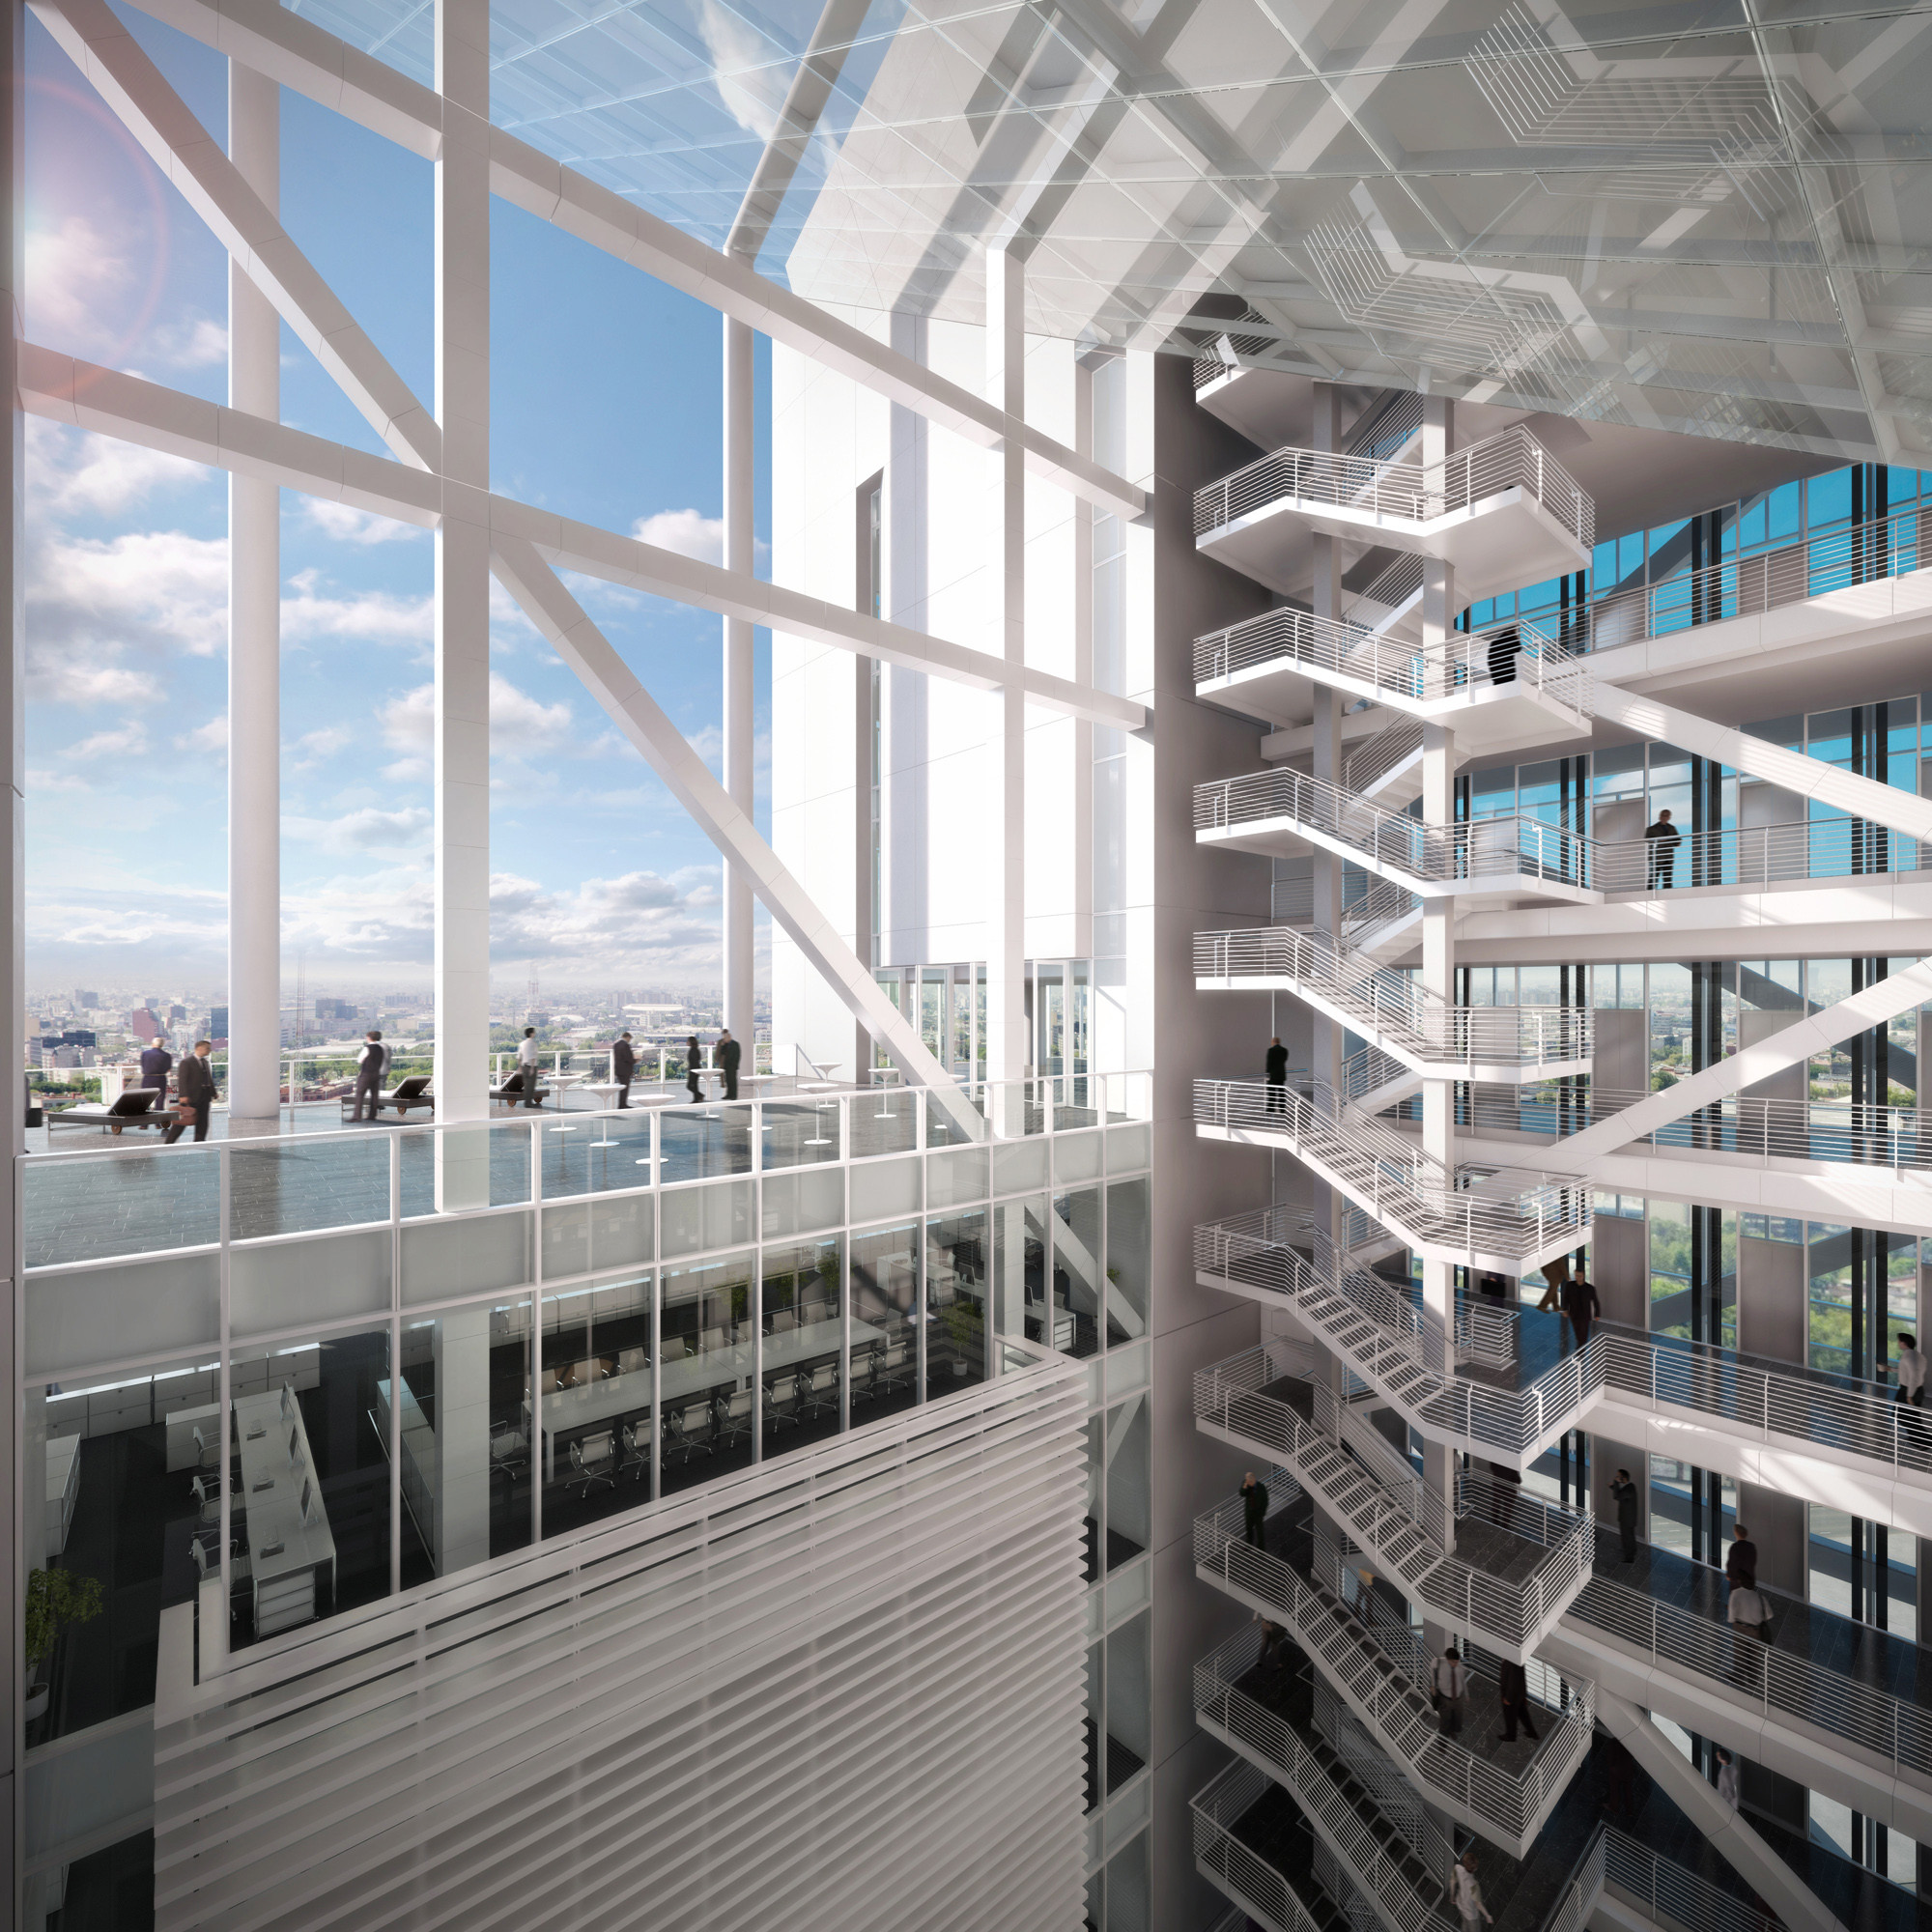 Atrio y vacío central. Image Cortesia de Richard Meier & Partners Architects LLP